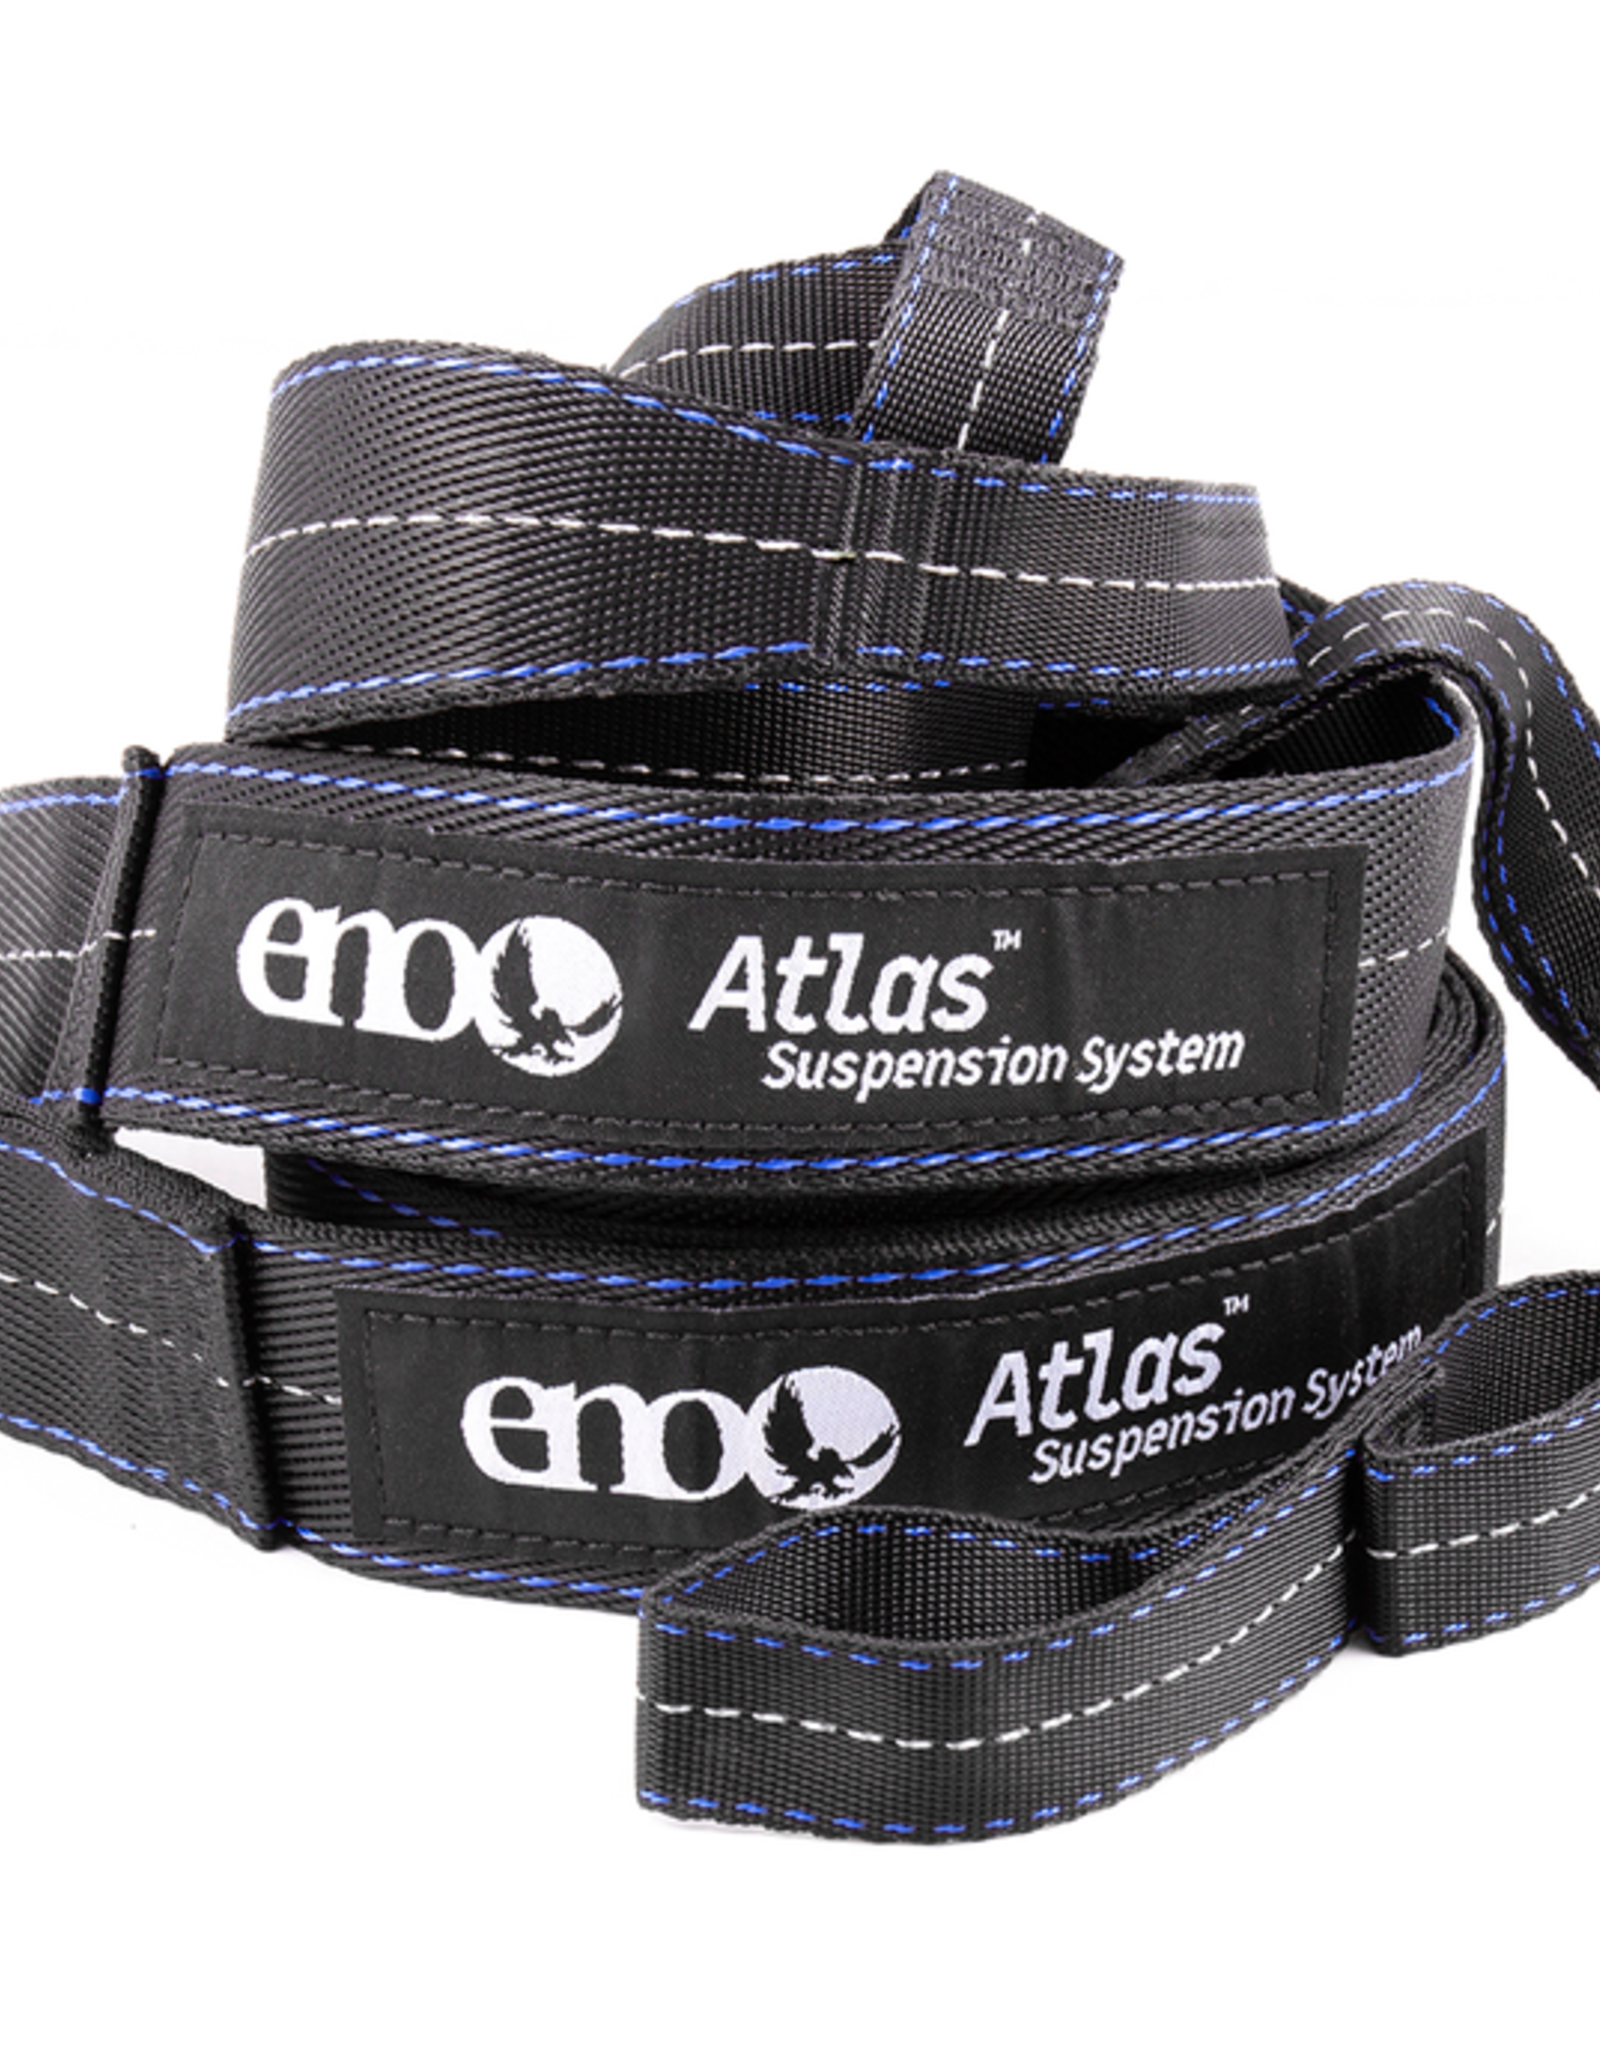 Eagles Nest Outfitters ENO Atlas Suspension Straps 9'